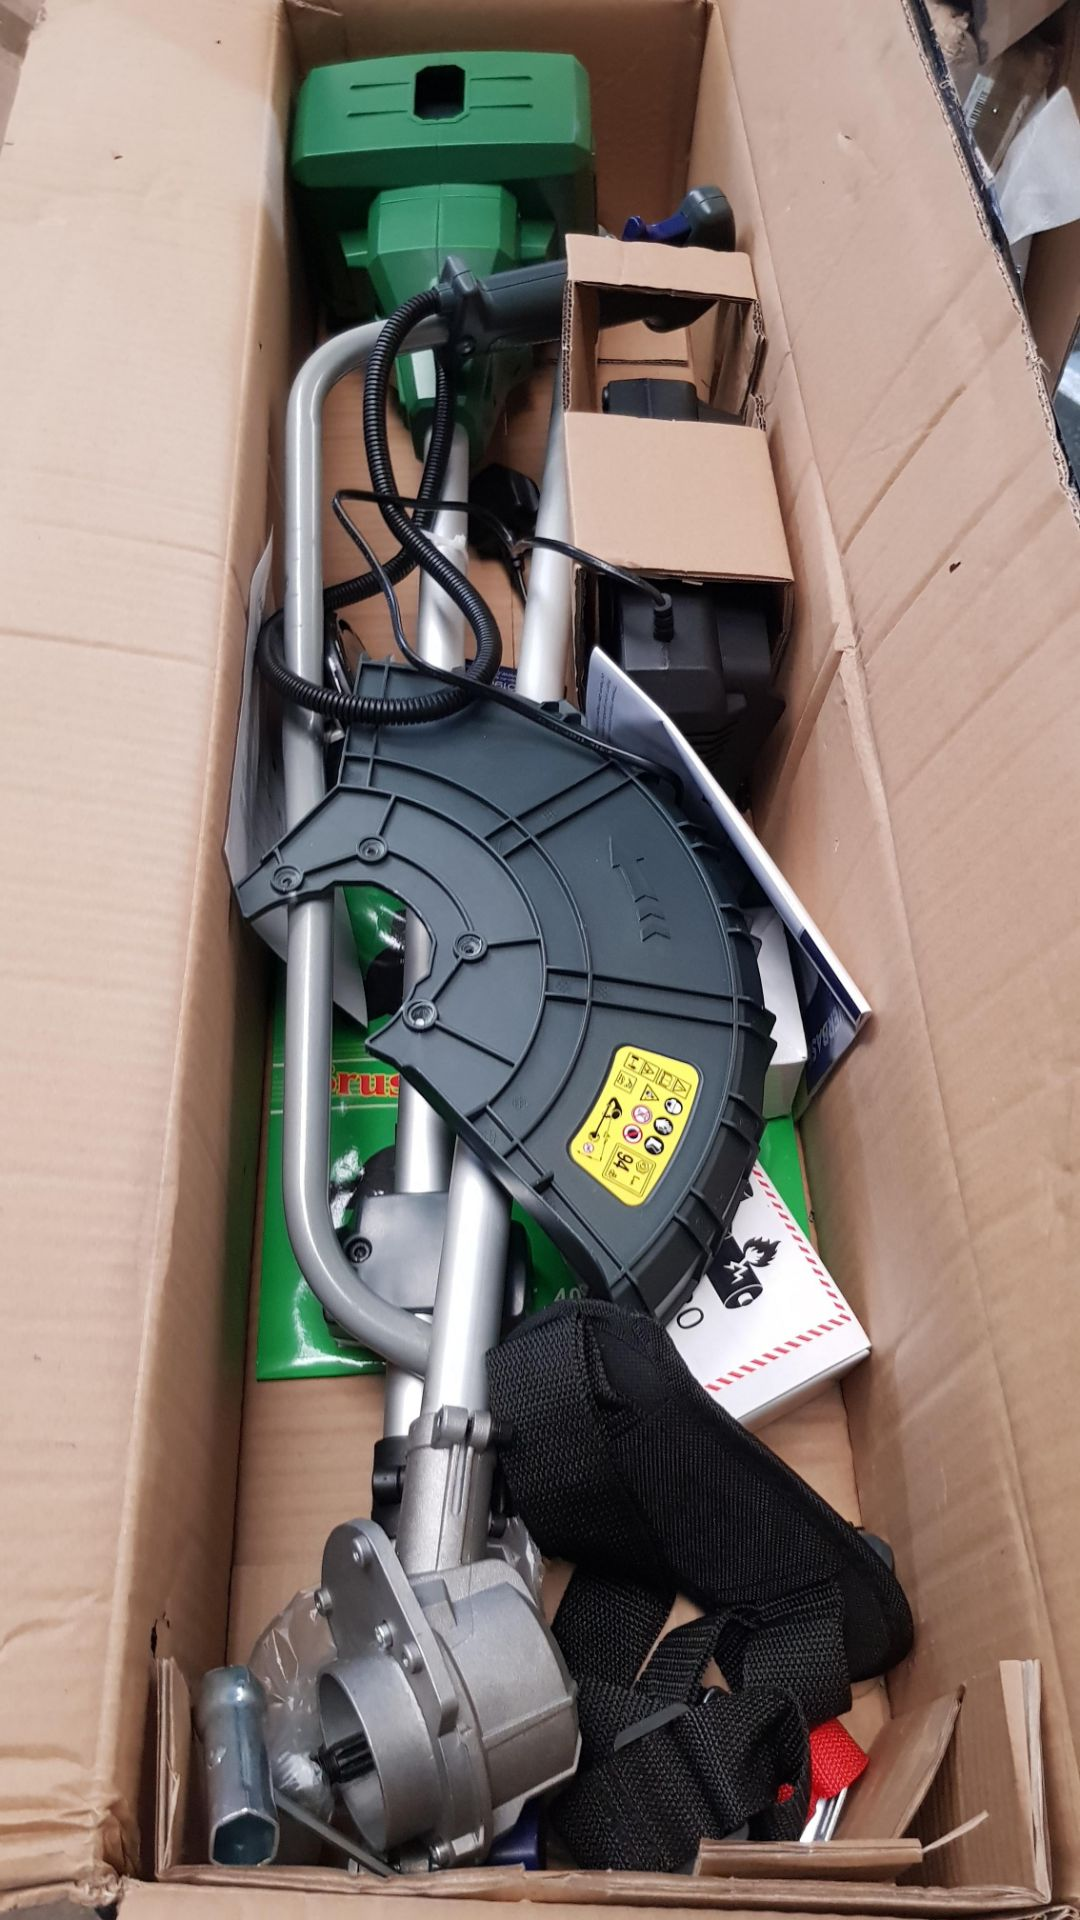 (P9) 1x Powerbase 34cm 40V Cordless Brush Cutter RRP £129. Contents Appear Clean, Unused With Batt - Image 4 of 5